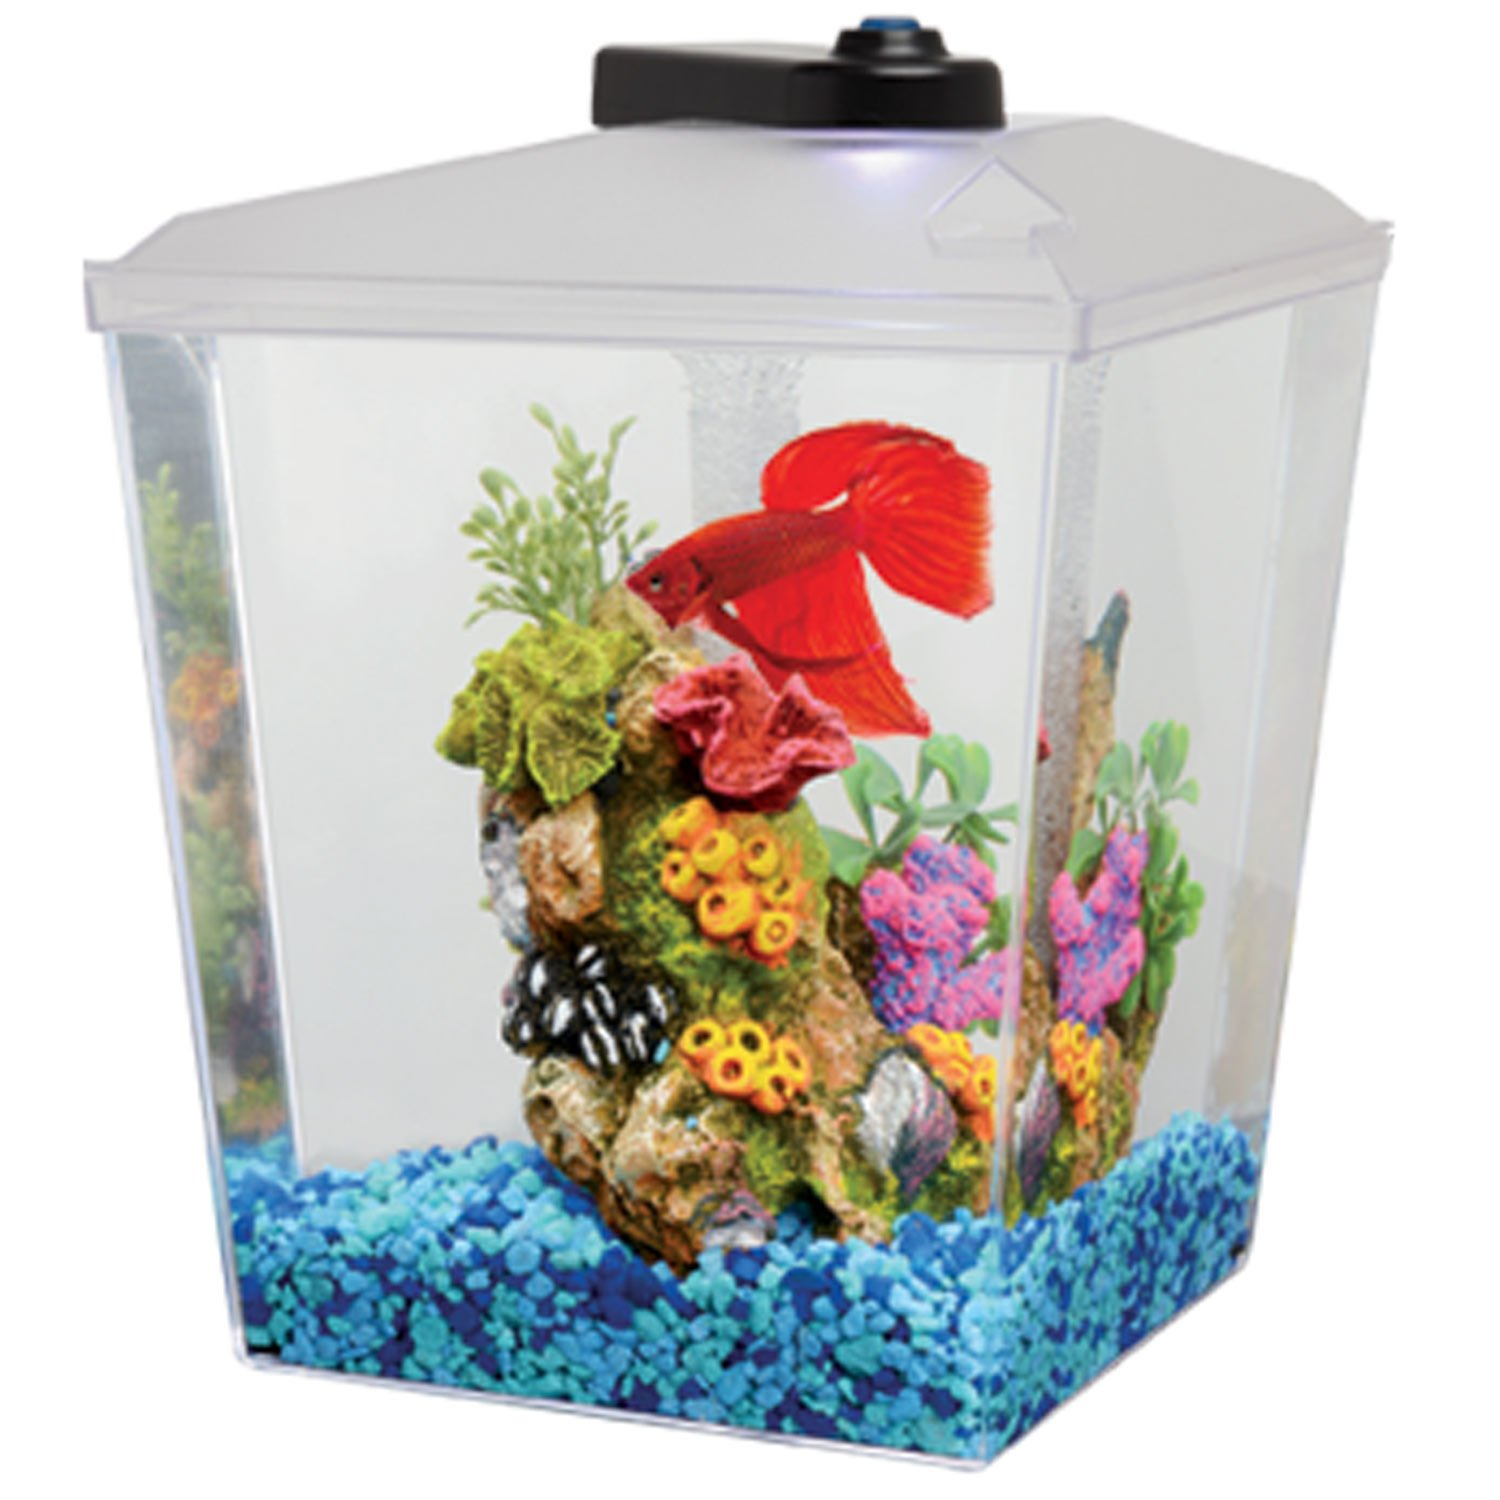 5 gallon fish tank petco description specifications